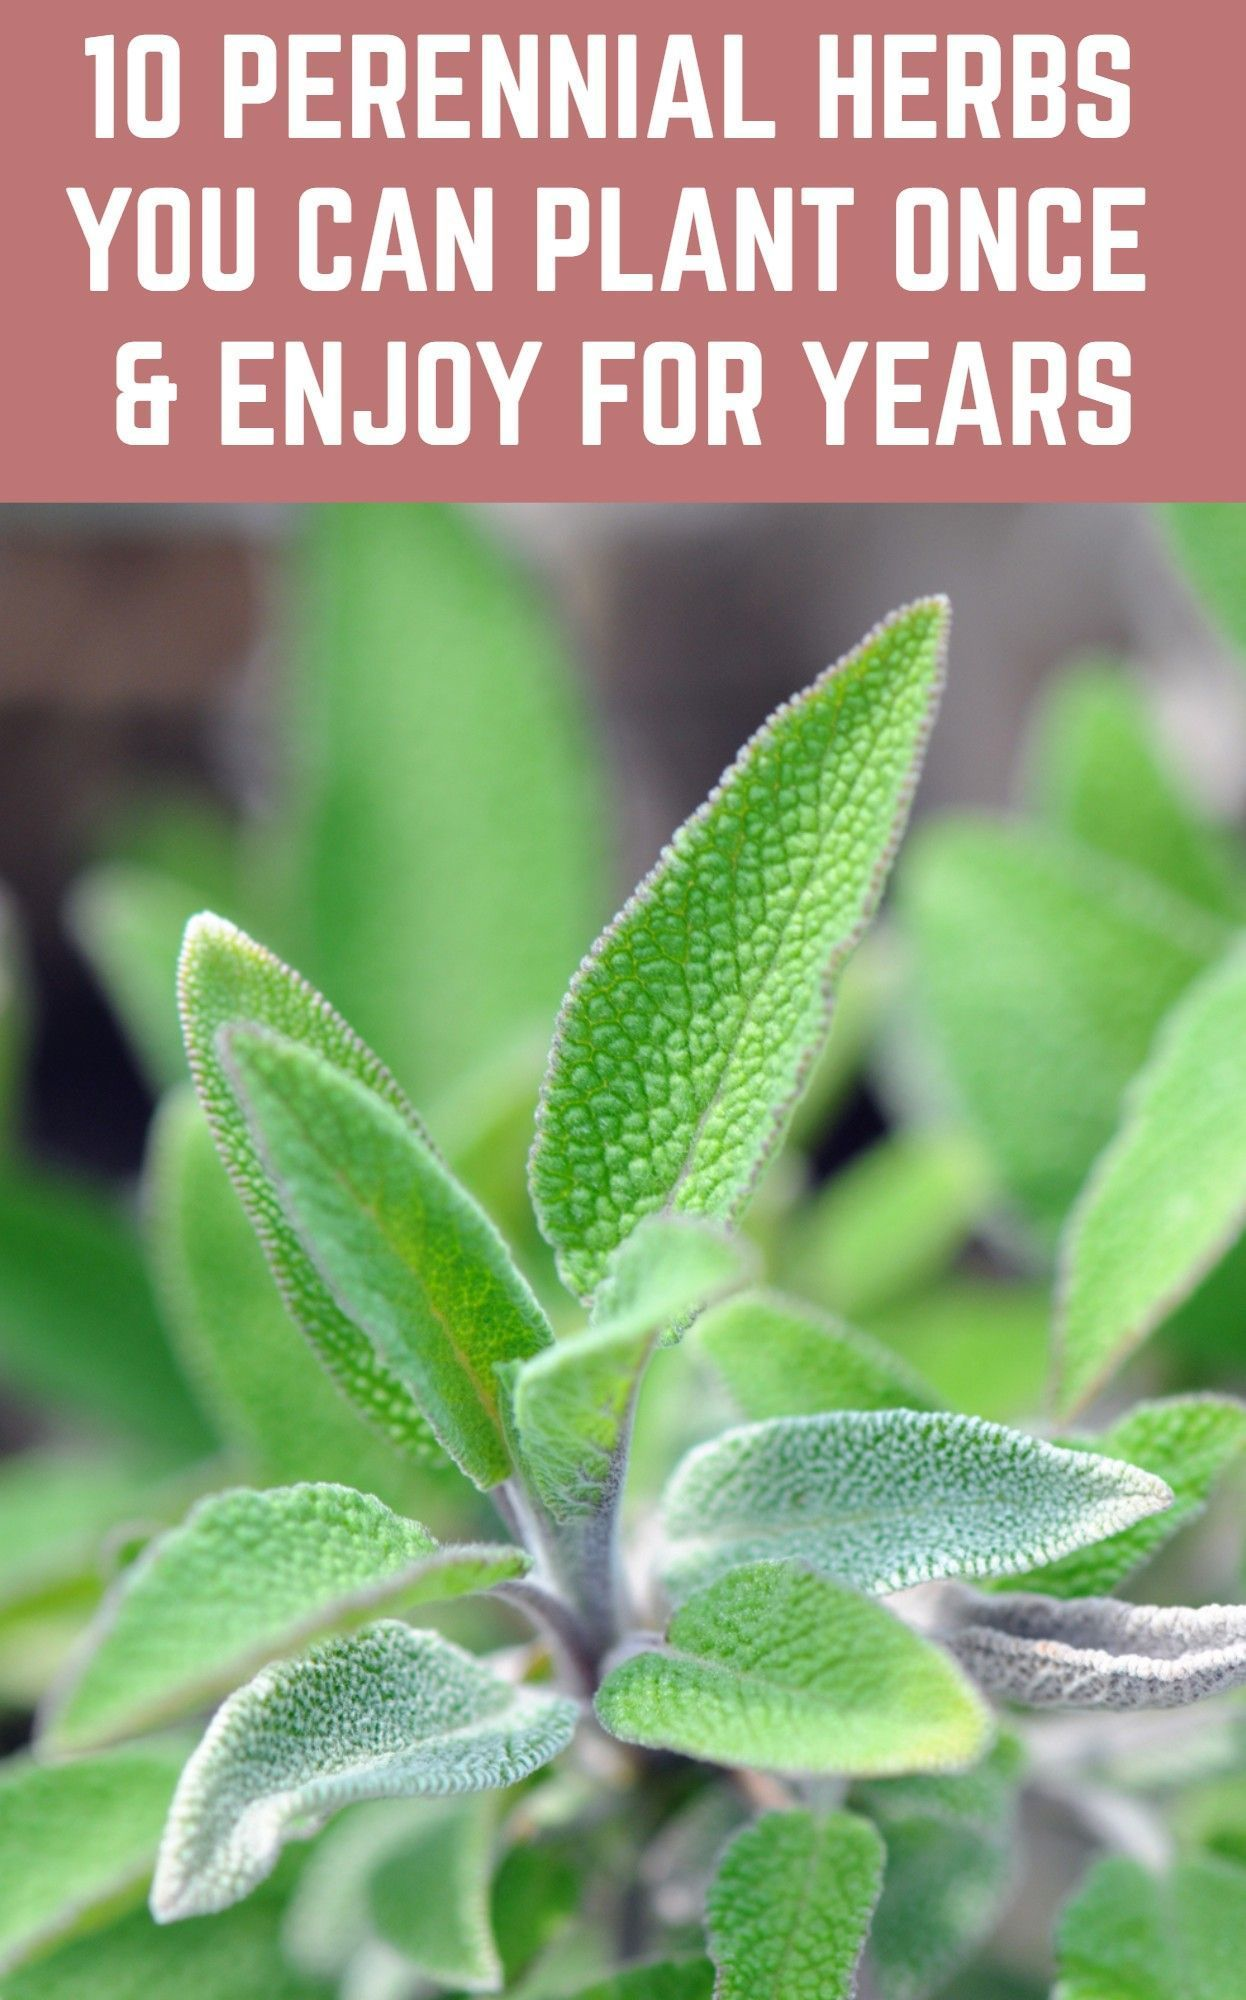 10 Perennial Herbs You Can Plant Once Enjoy For Years In 2020 Perennial Herbs Planting Herbs Plants